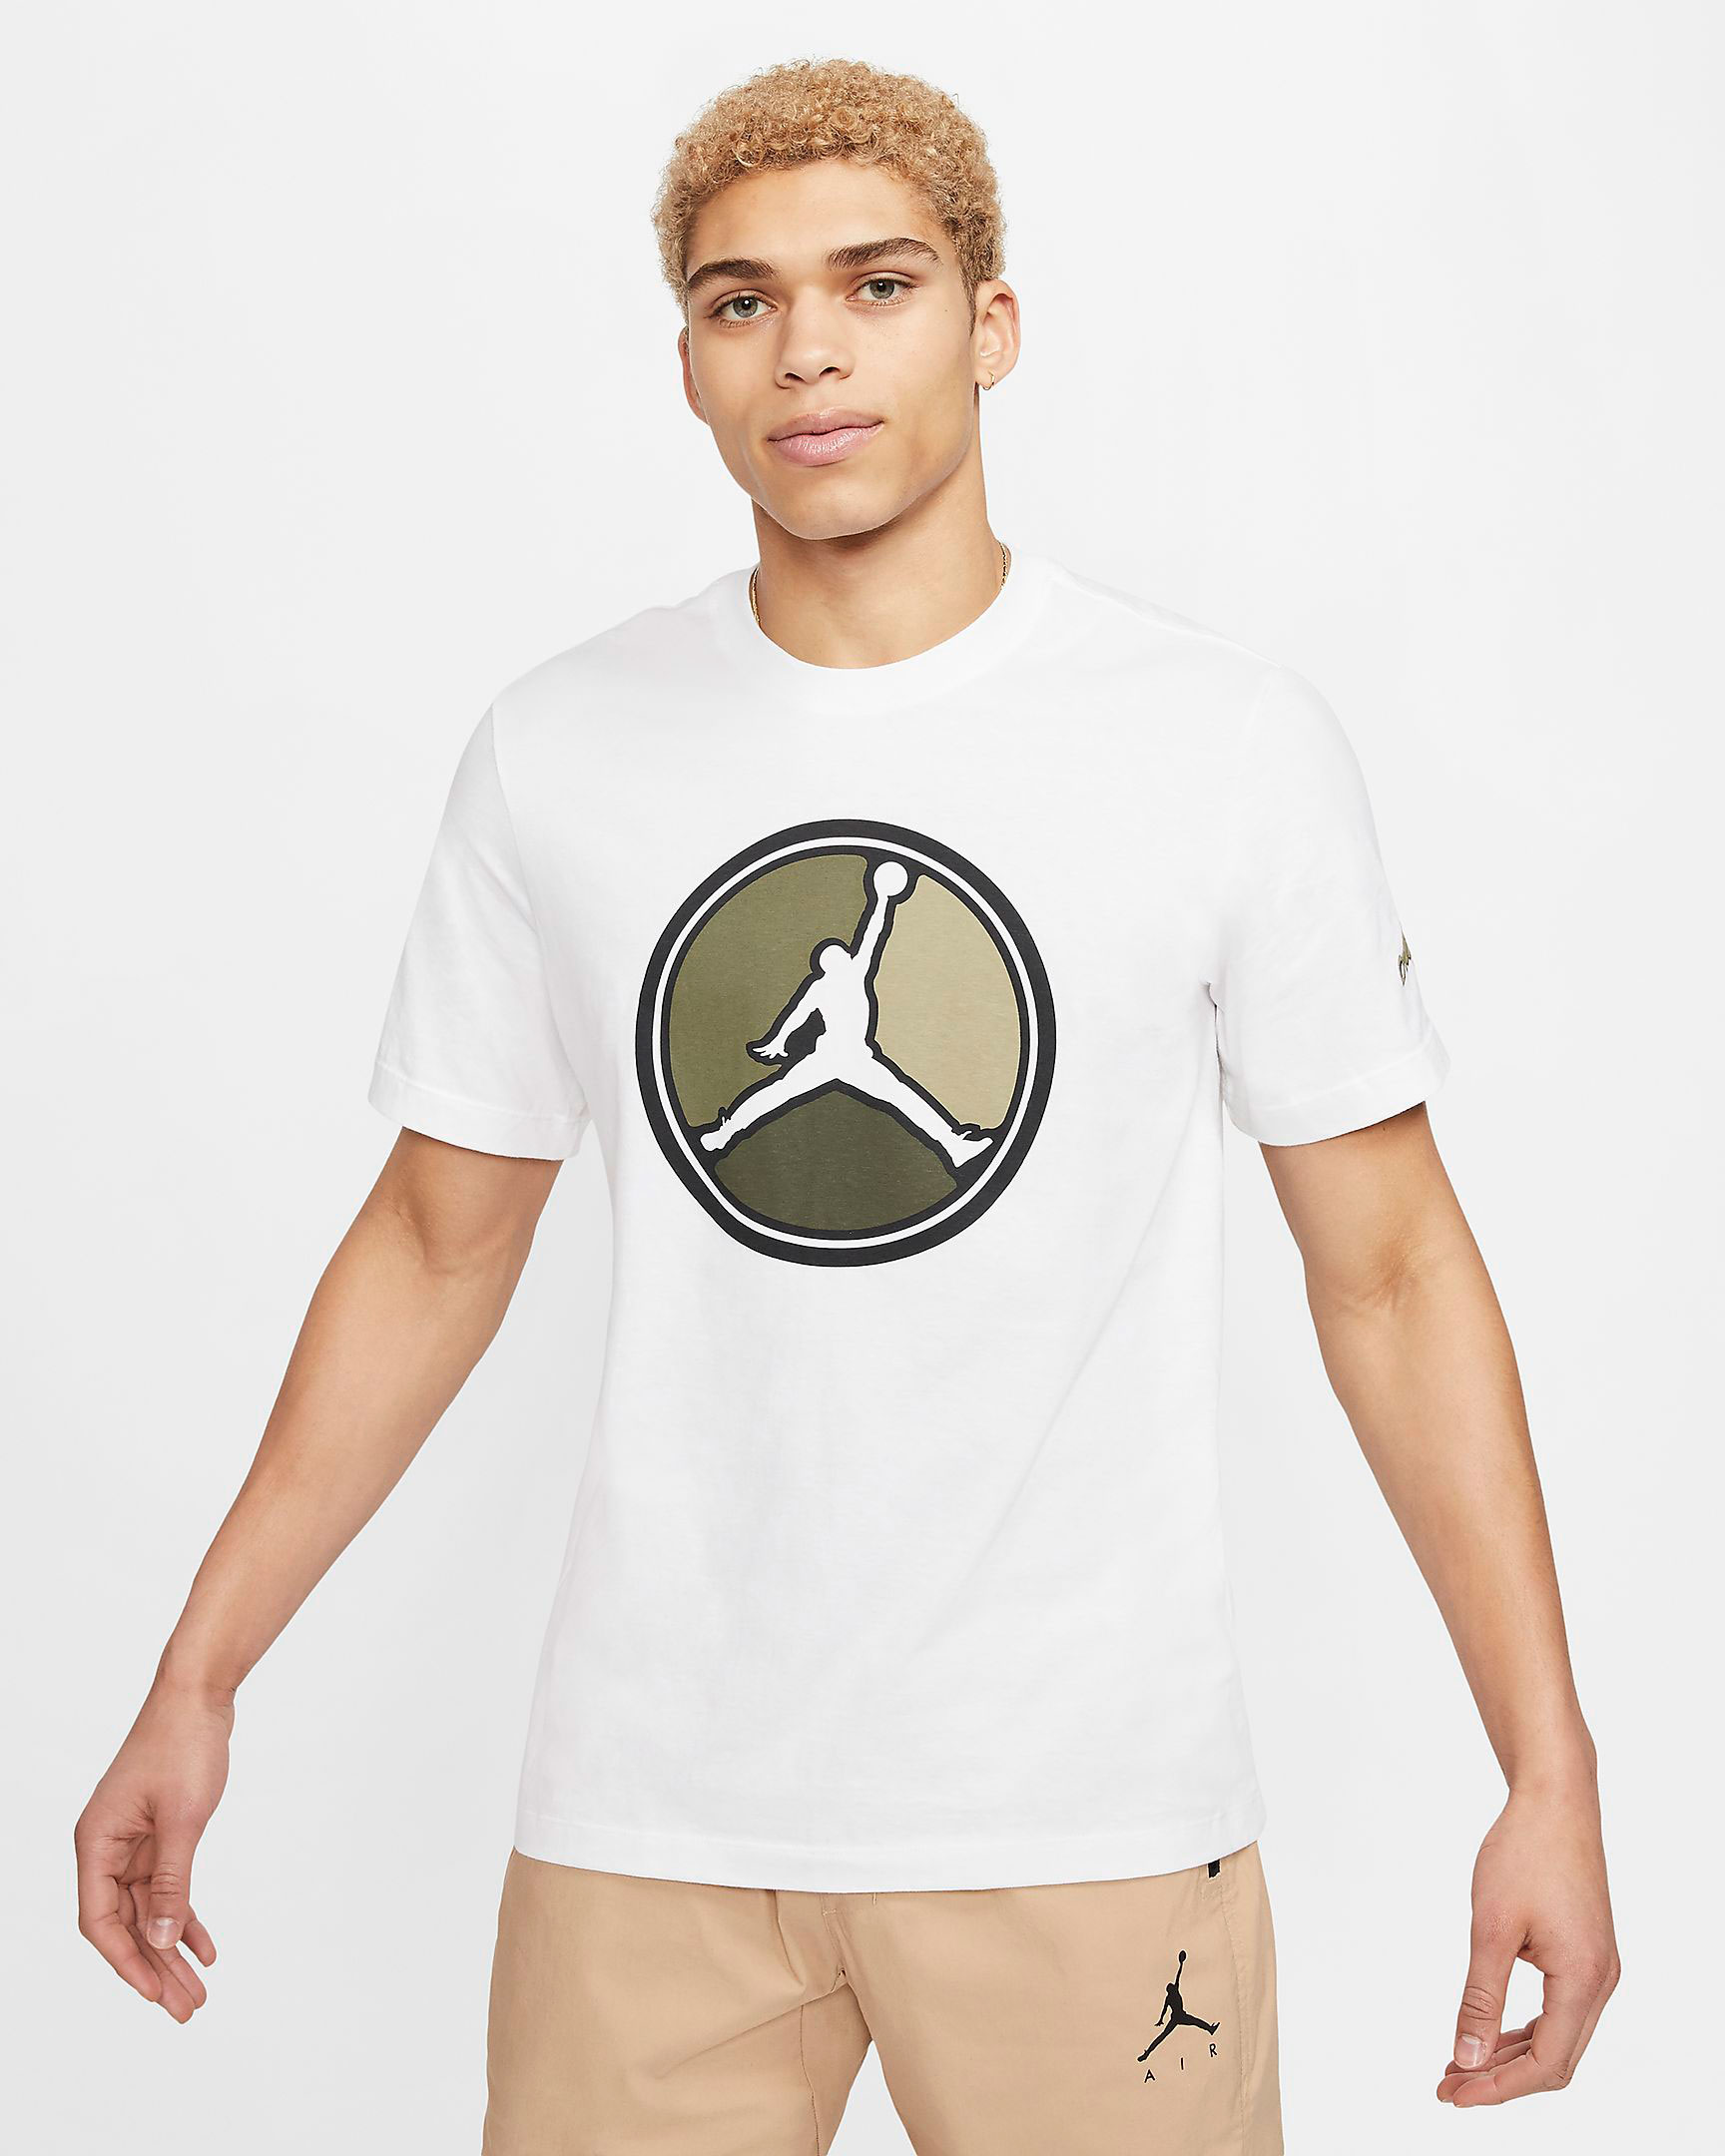 jordan-remastered-shirt-white-olive-1